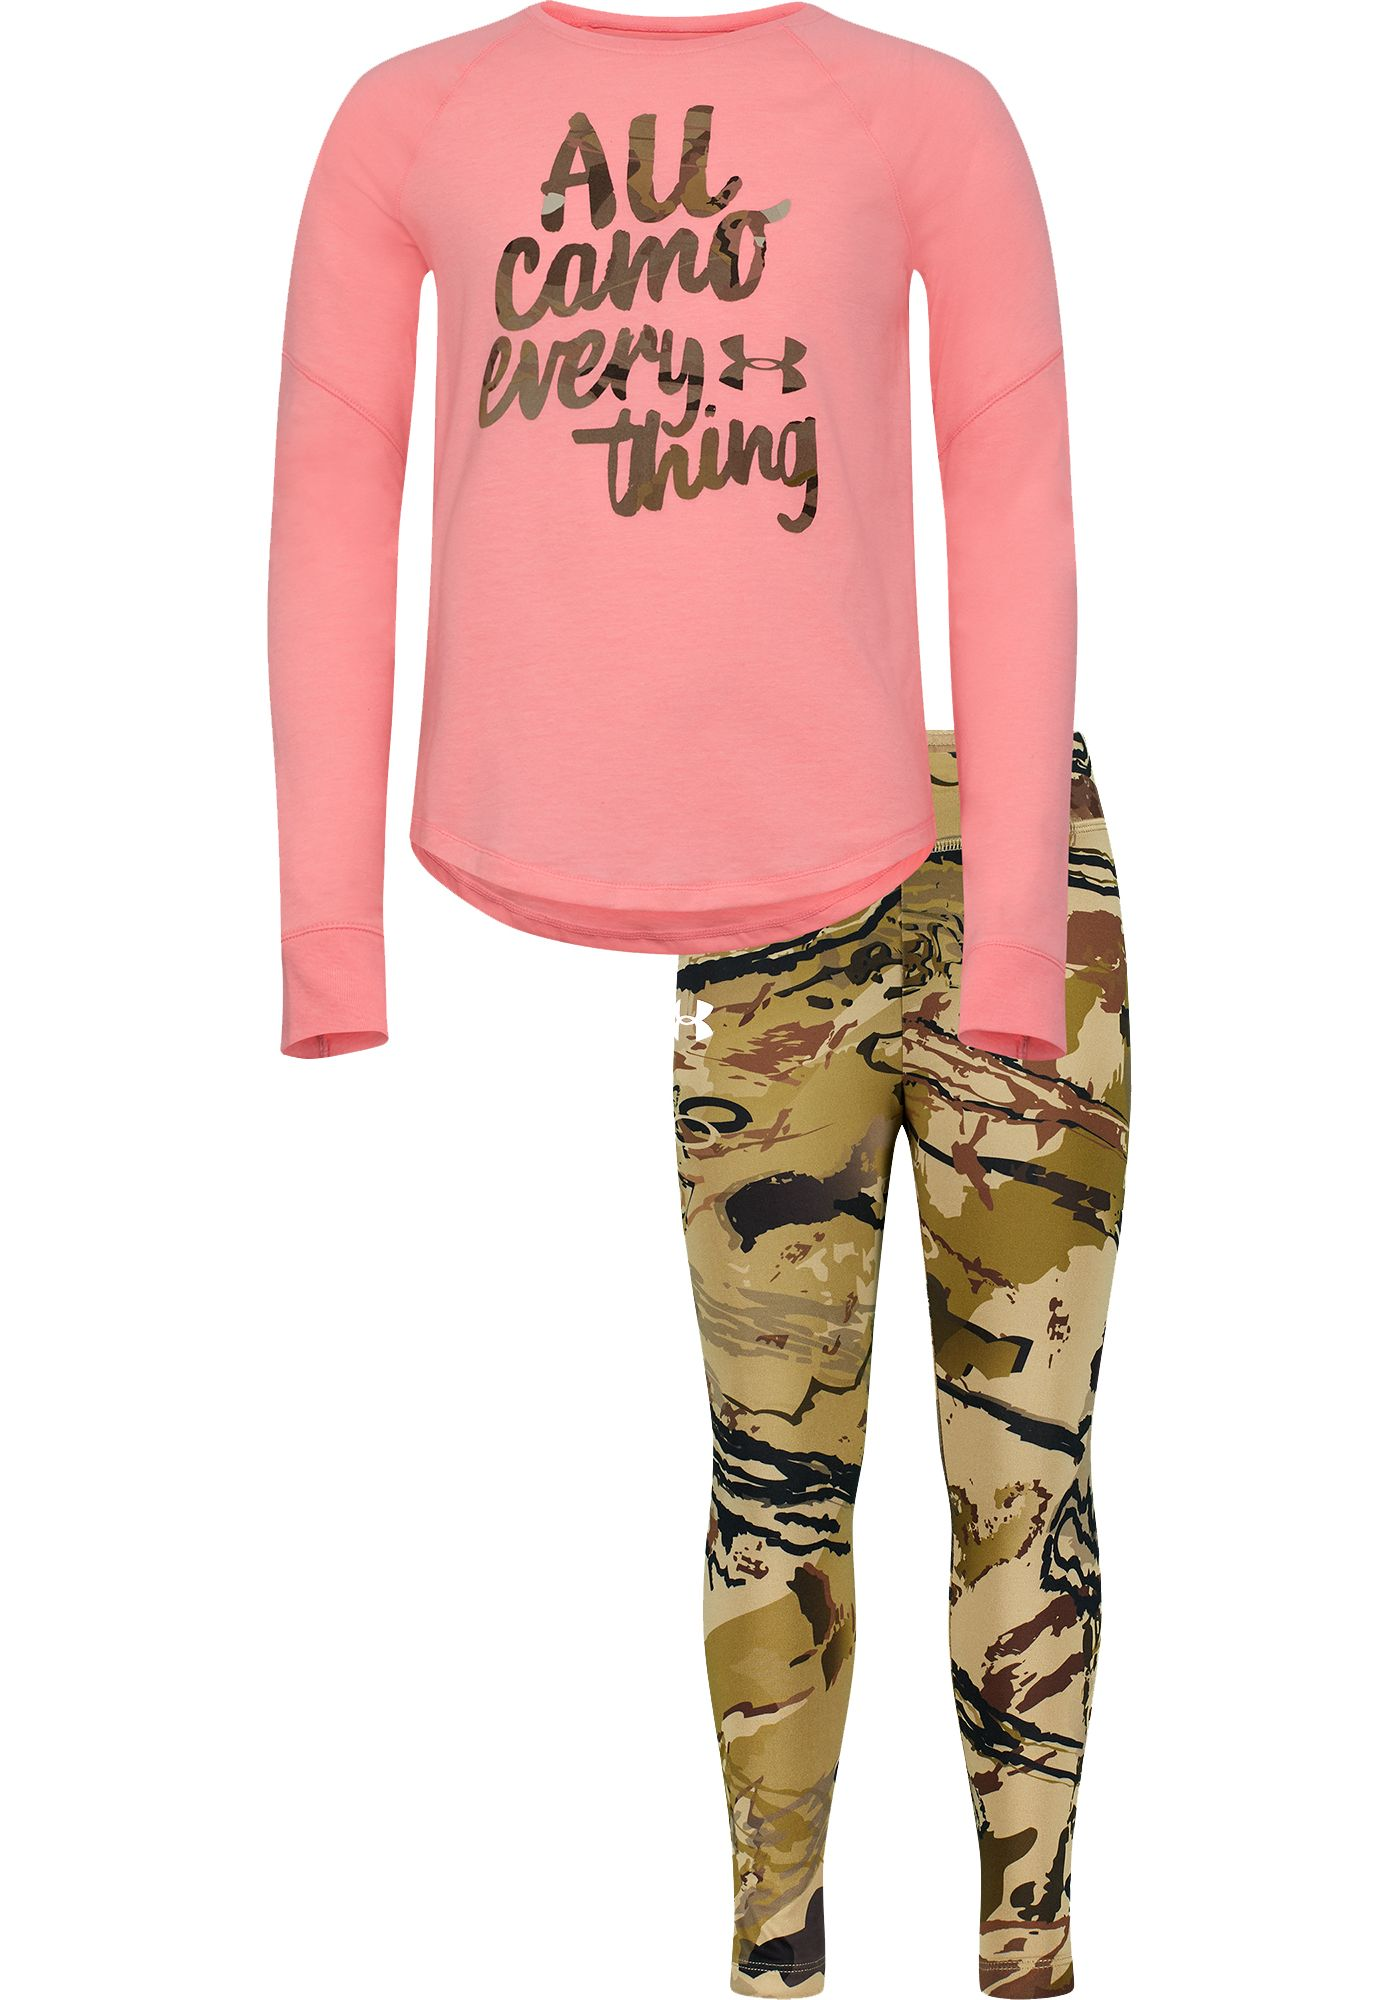 Under Armour Infant Girls' All Camo Everything T-Shirt and Pants Set